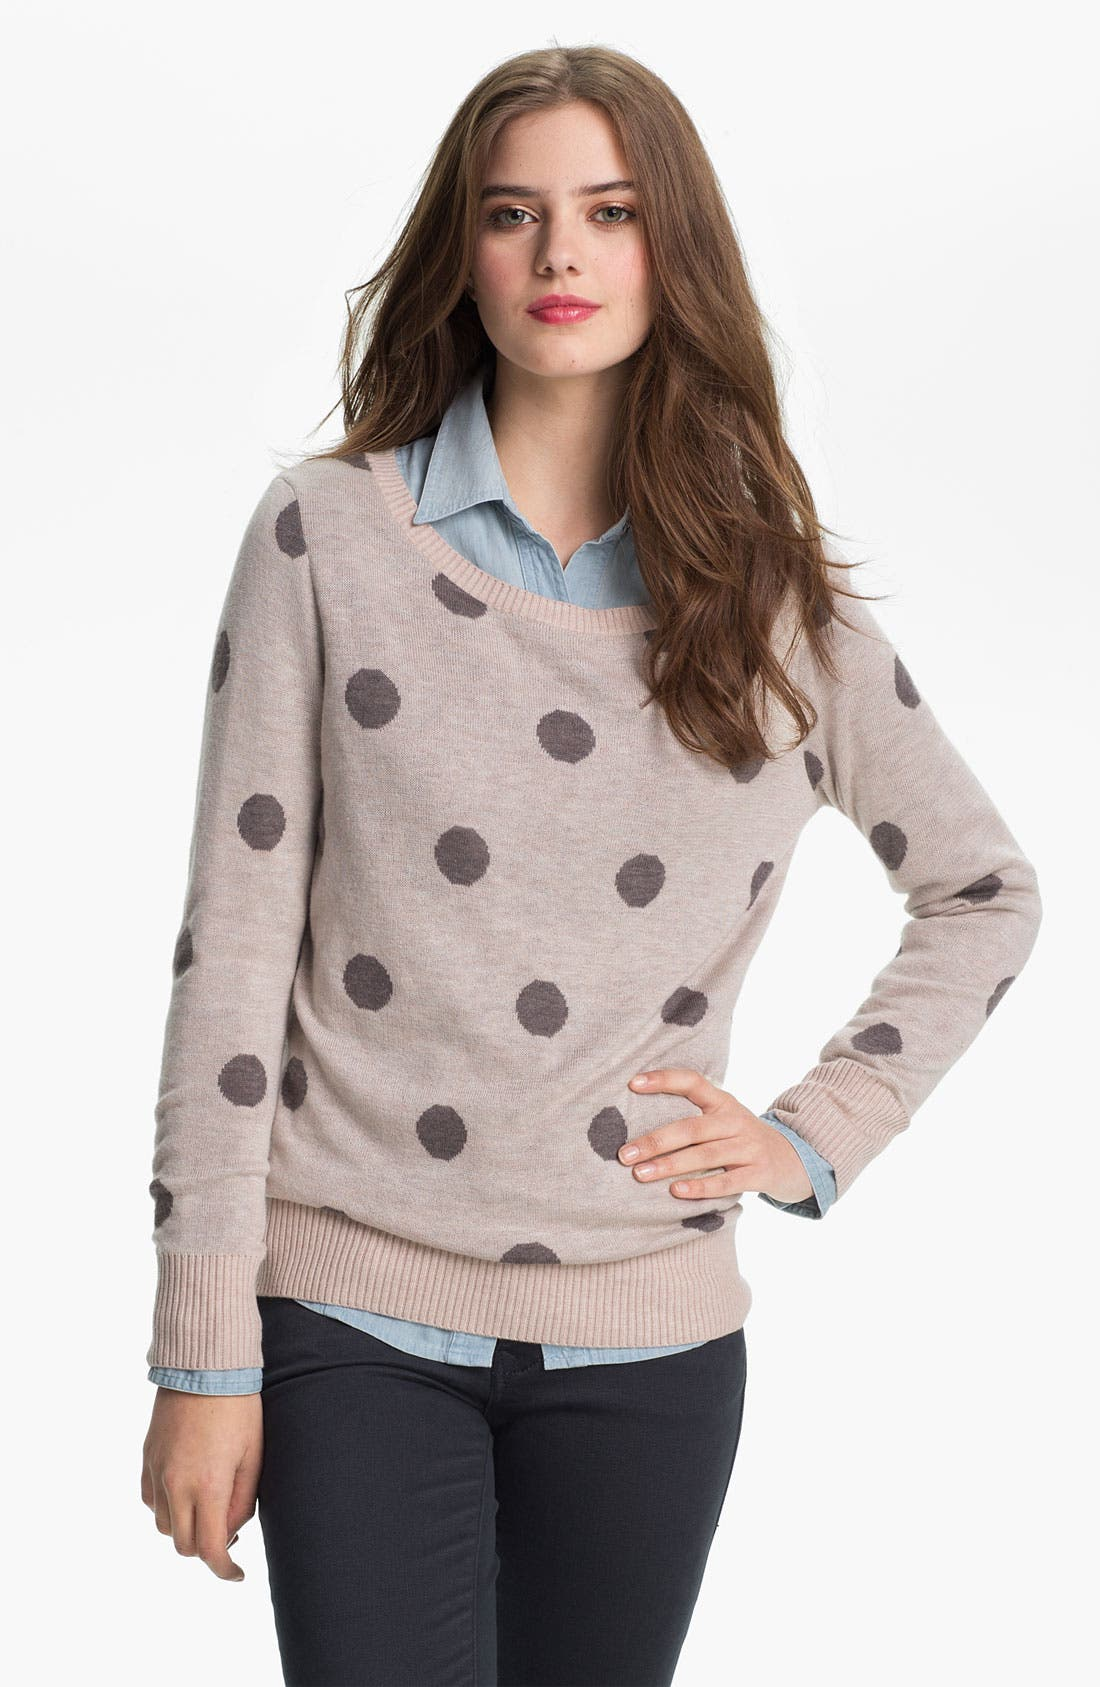 Main Image - Max & Mia 'Big Dot' Sweater